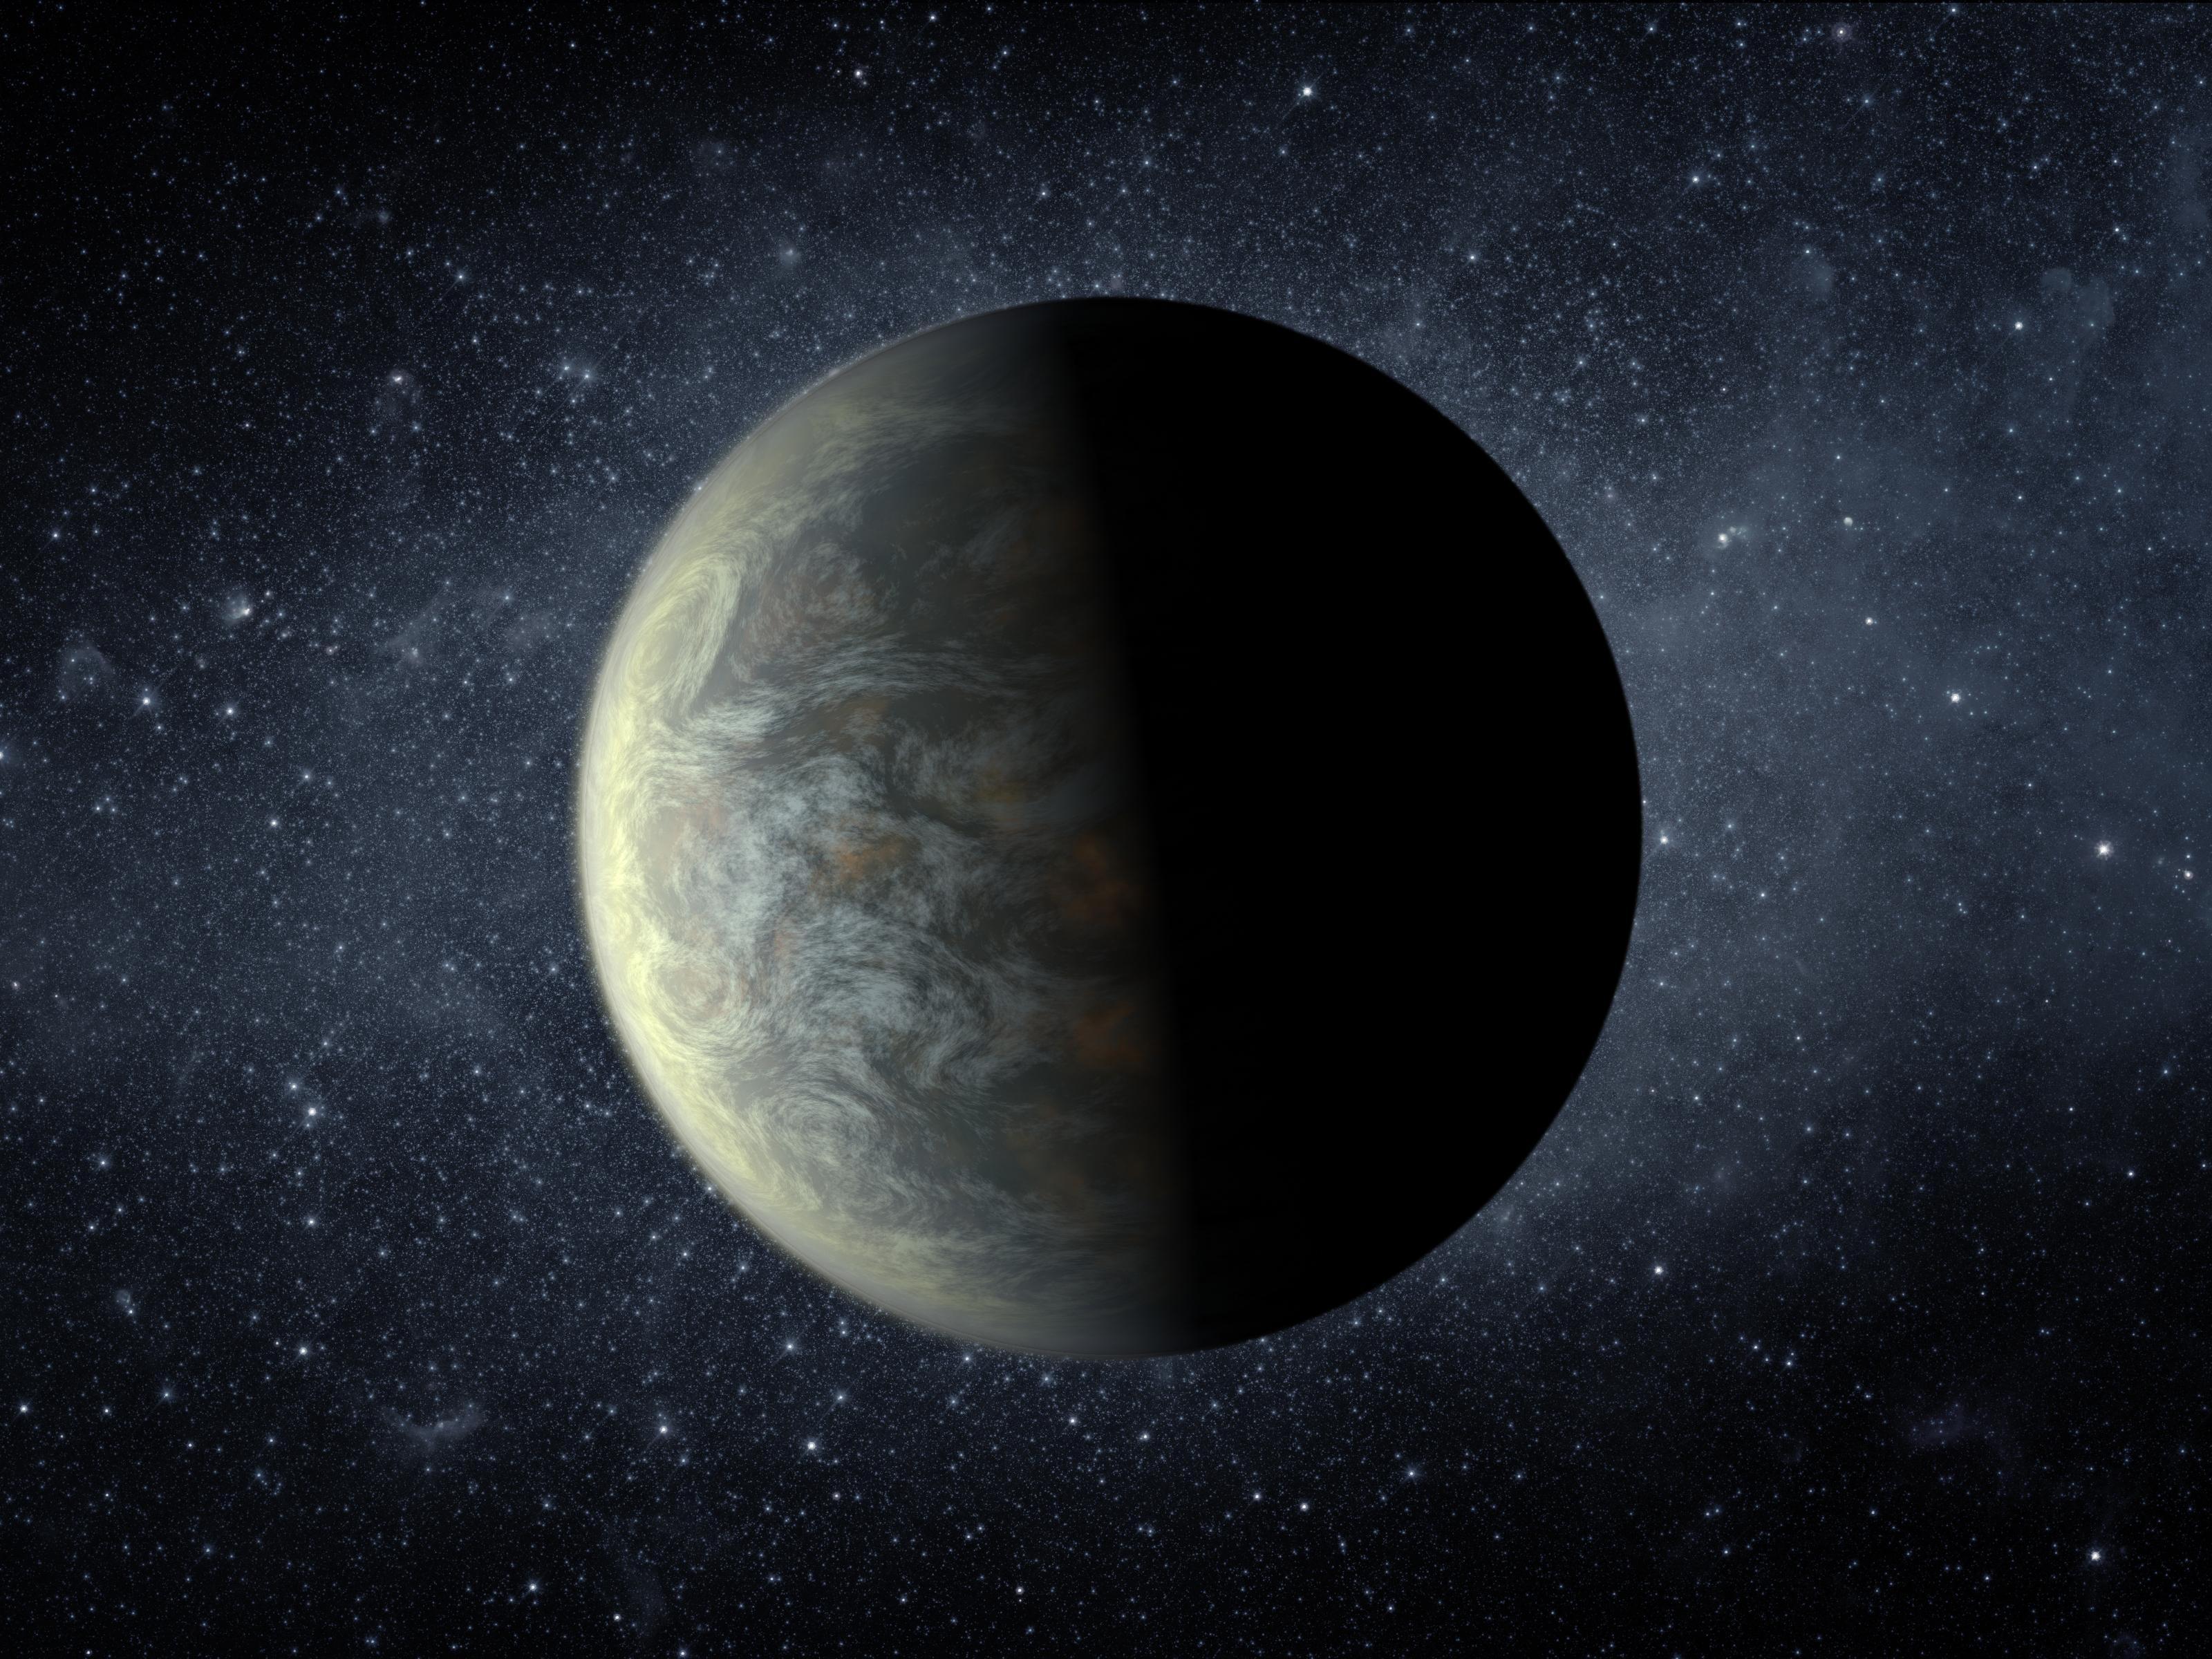 kepler a planet behind neptune - photo #9